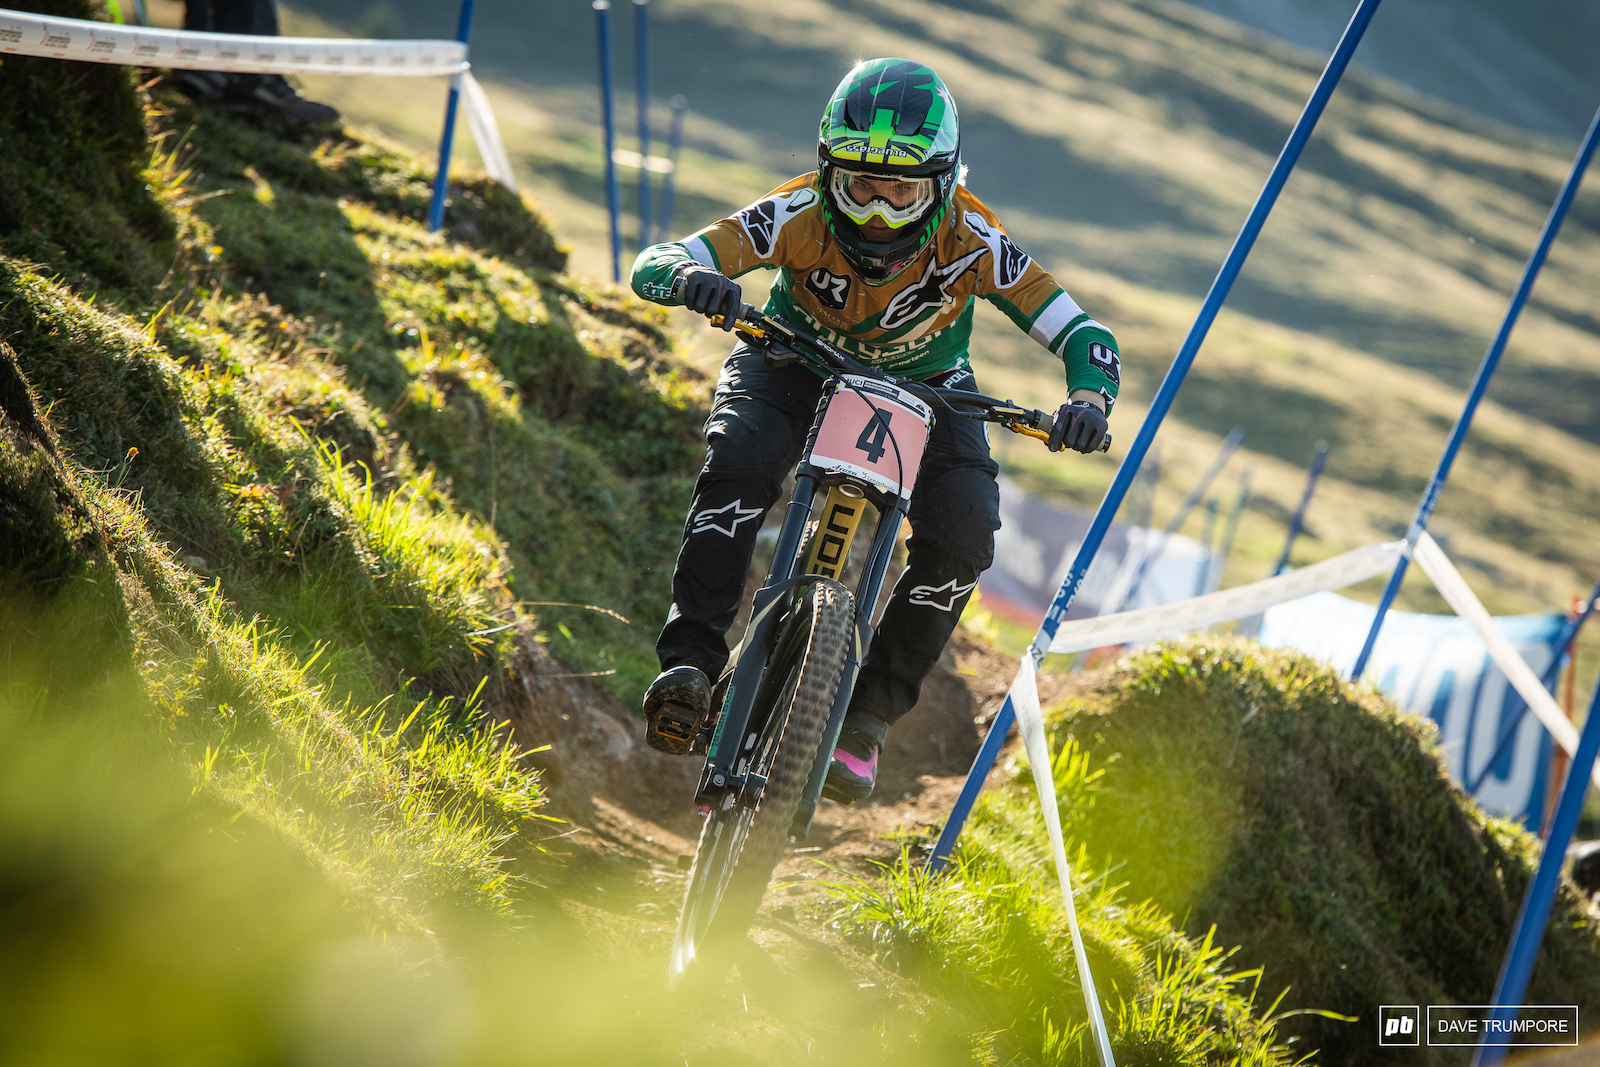 Tracey Hannah will be looking for world champs redemption after last years race in Cairns.